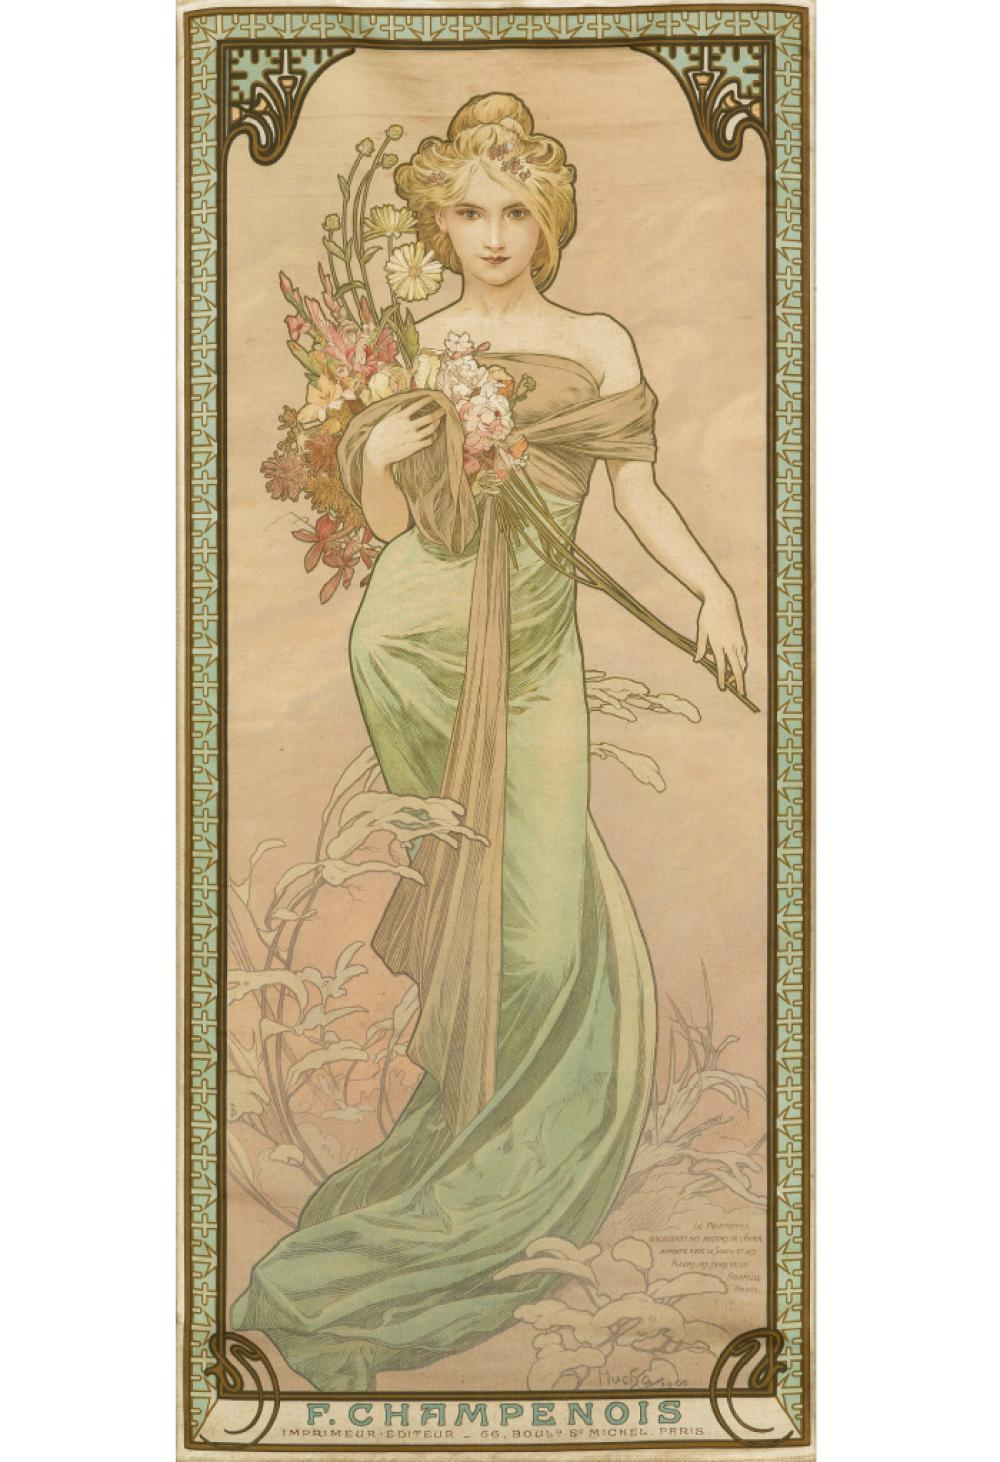 ALPHONSE MUCHA (1860-1939). [THE SEASONS.] Group of 4 decorative panels on silk. 1900. Each approximately 27x12 inches, 66x30 cm. F. Ch